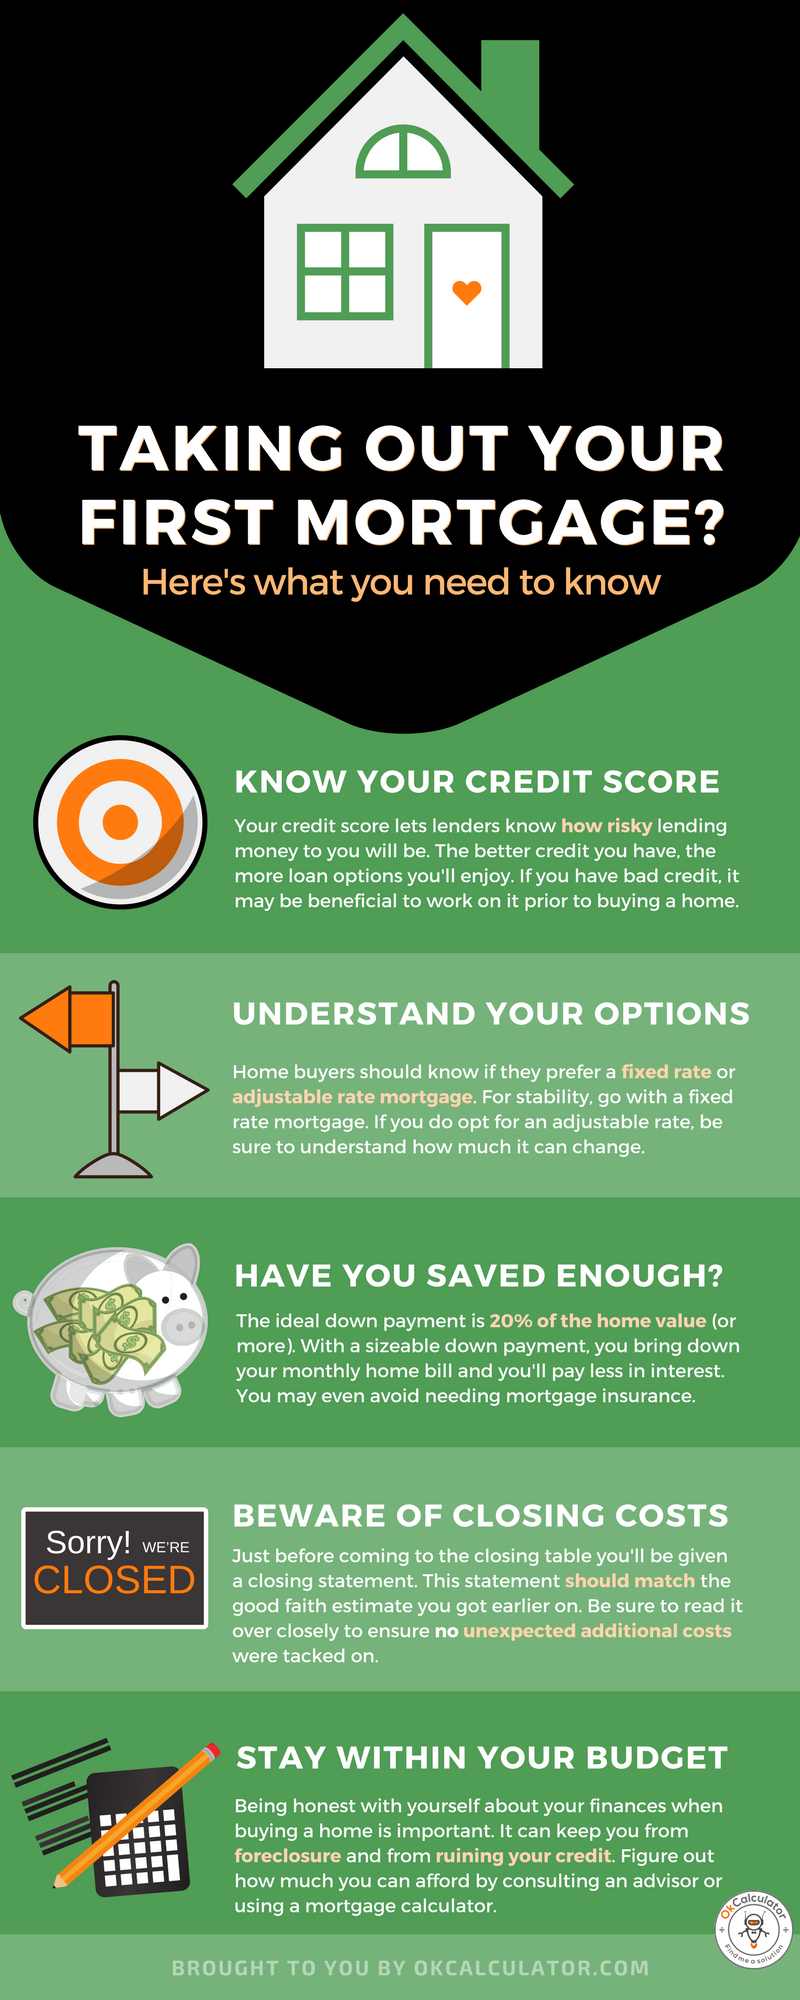 Workout your credit, and budget for your home loan before